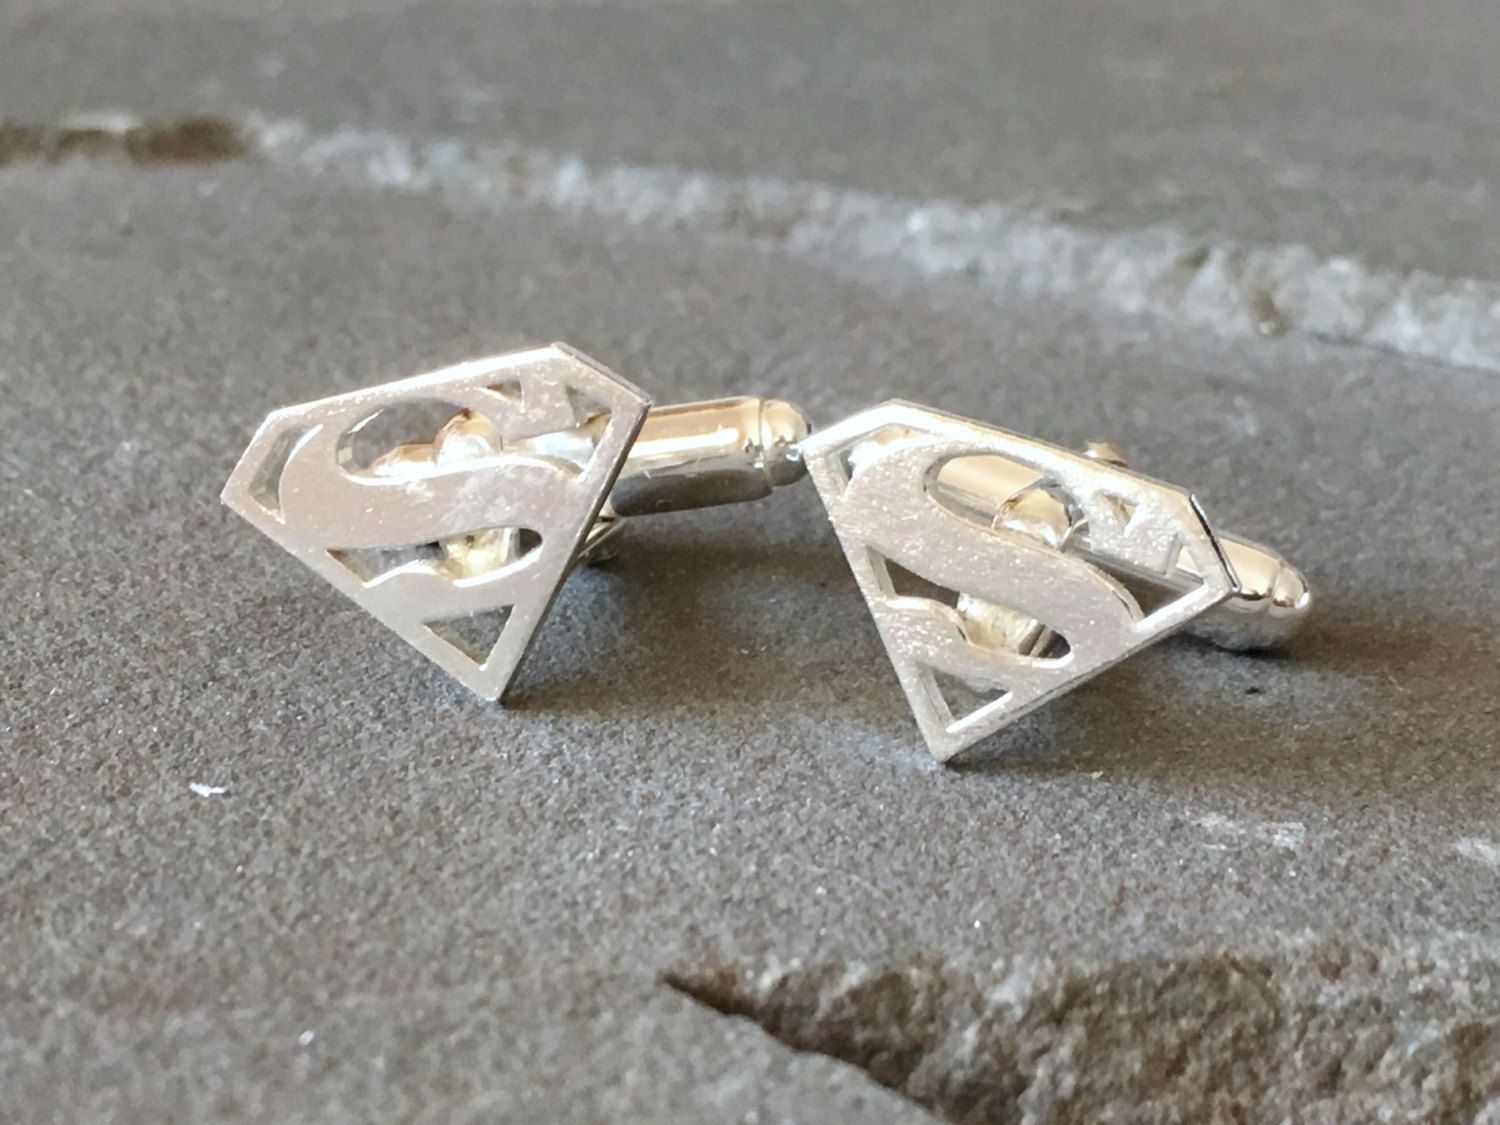 Sterling Silver Superman Cufflinks, Gifts for Techies, Superhero Gifts, Geeky Gifts, Groom Cufflinks, Superhero Cufflinks, Groomsmen Gifts #superherogifts